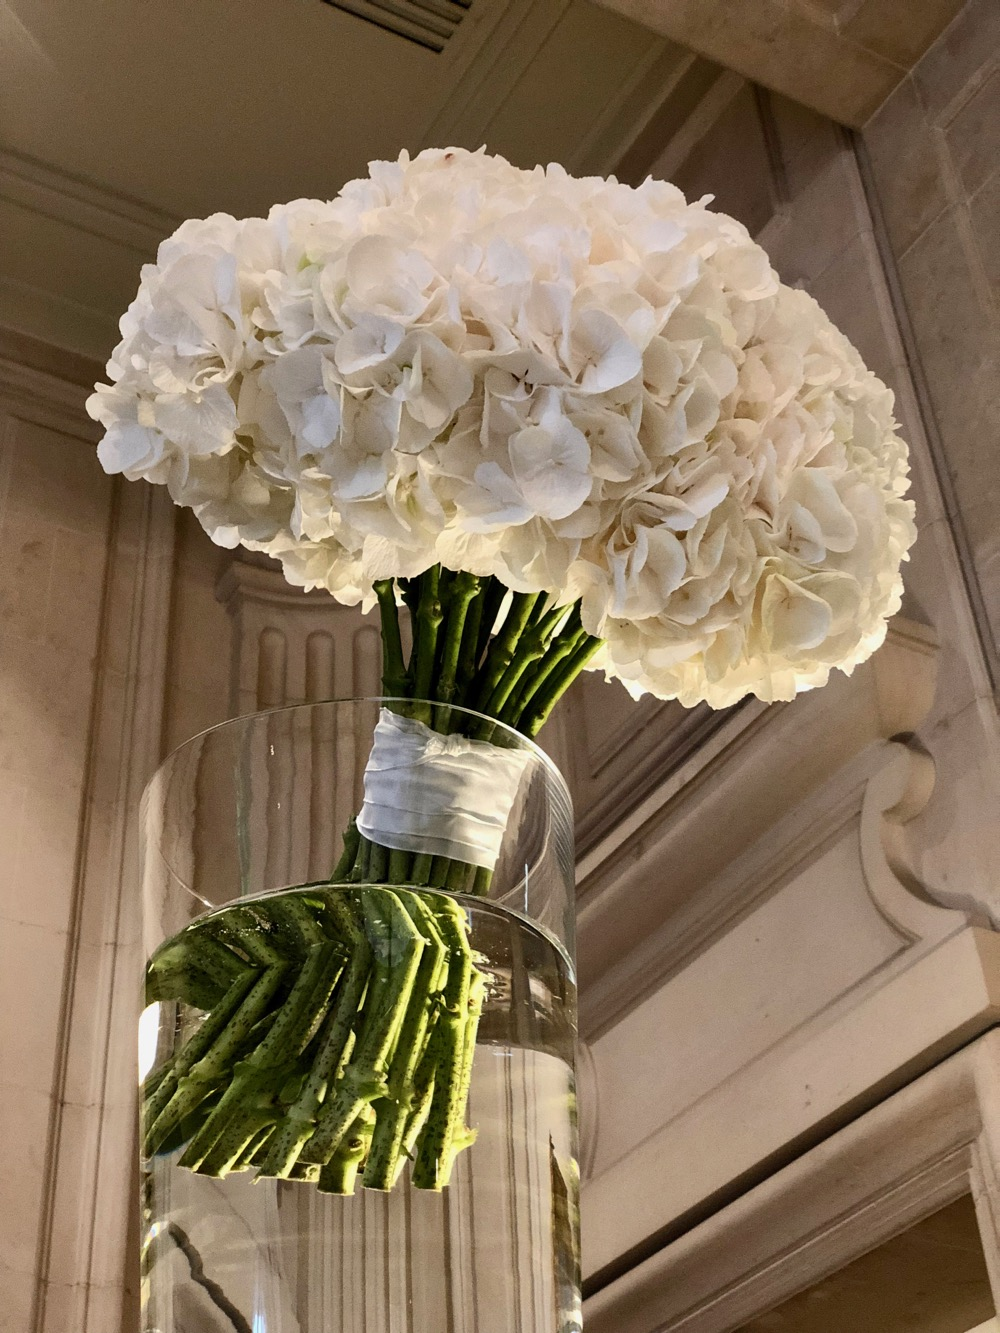 Classy colibri at the Four Seasons Hotel George V Paris, flower creations by Jeff Leatham ©classycolibri